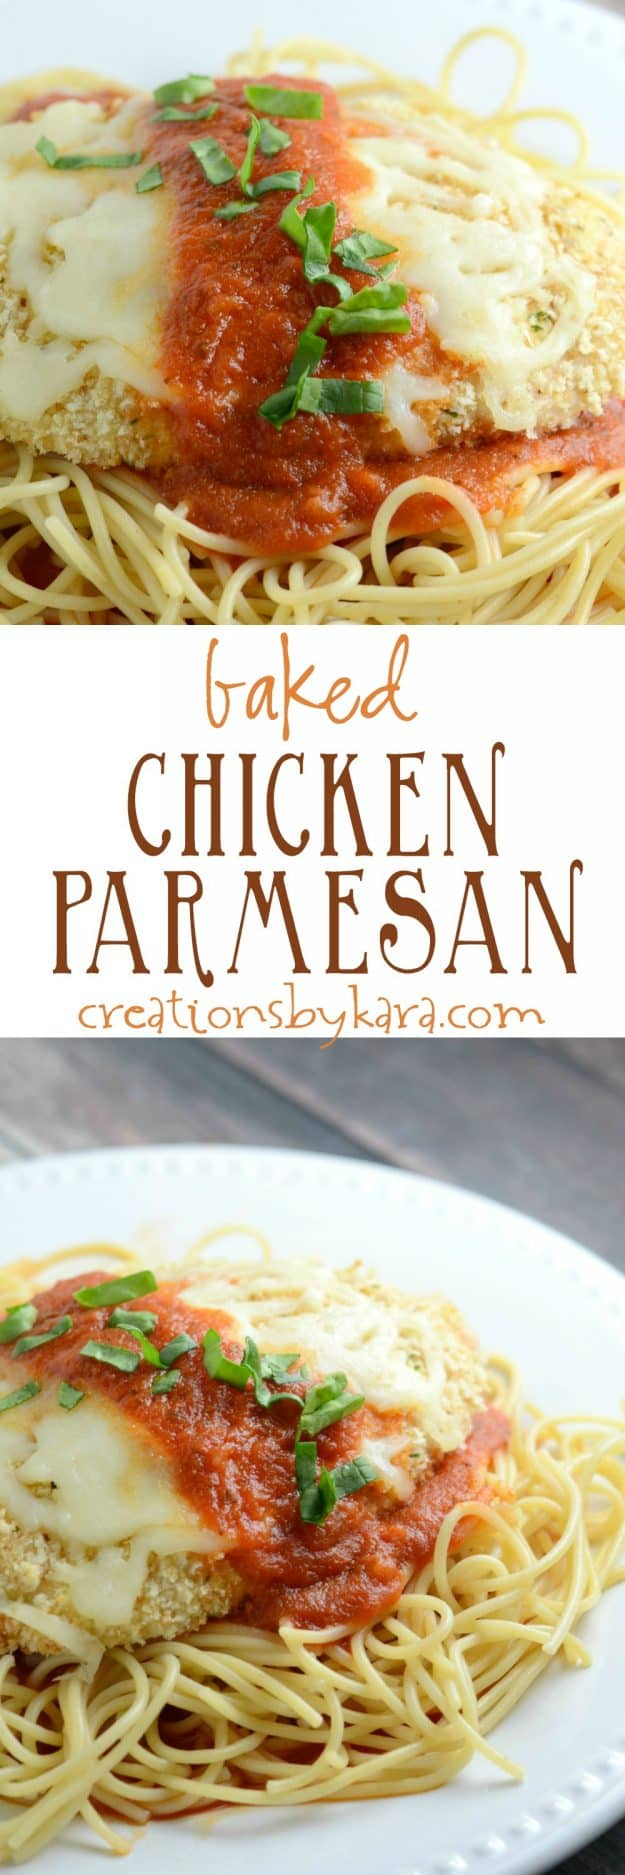 baked parmesan chicken recipe collage